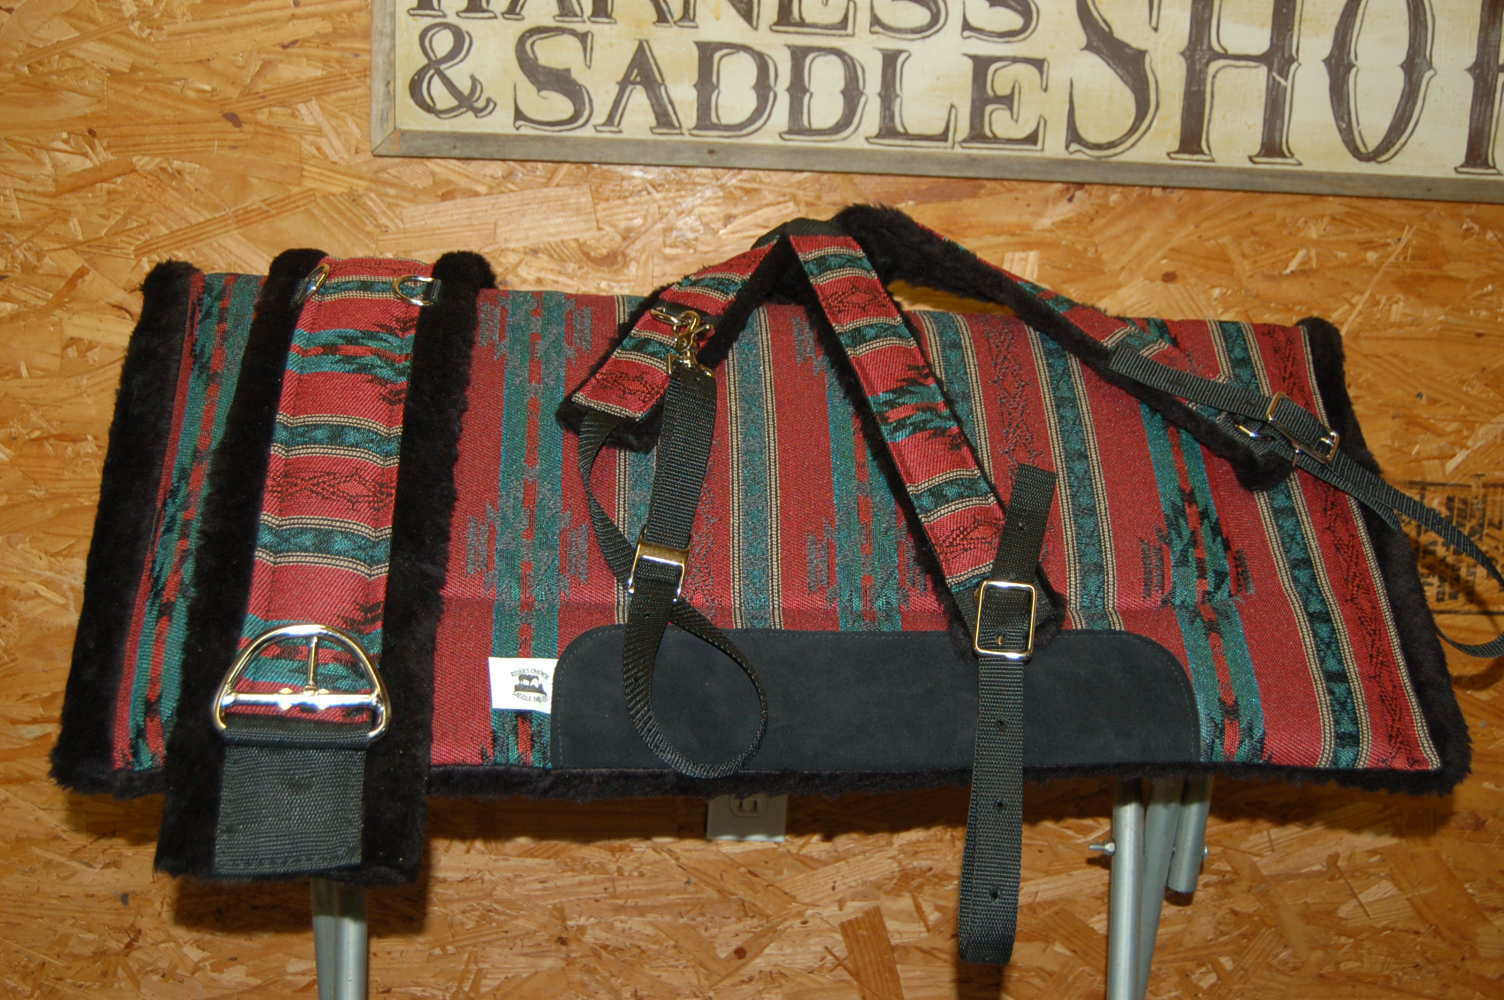 RIDERS CHOICE CARDINAL rosso SADDLE PAD COLLAR GIRTH FREE SHIP MADE IN ALABAMA